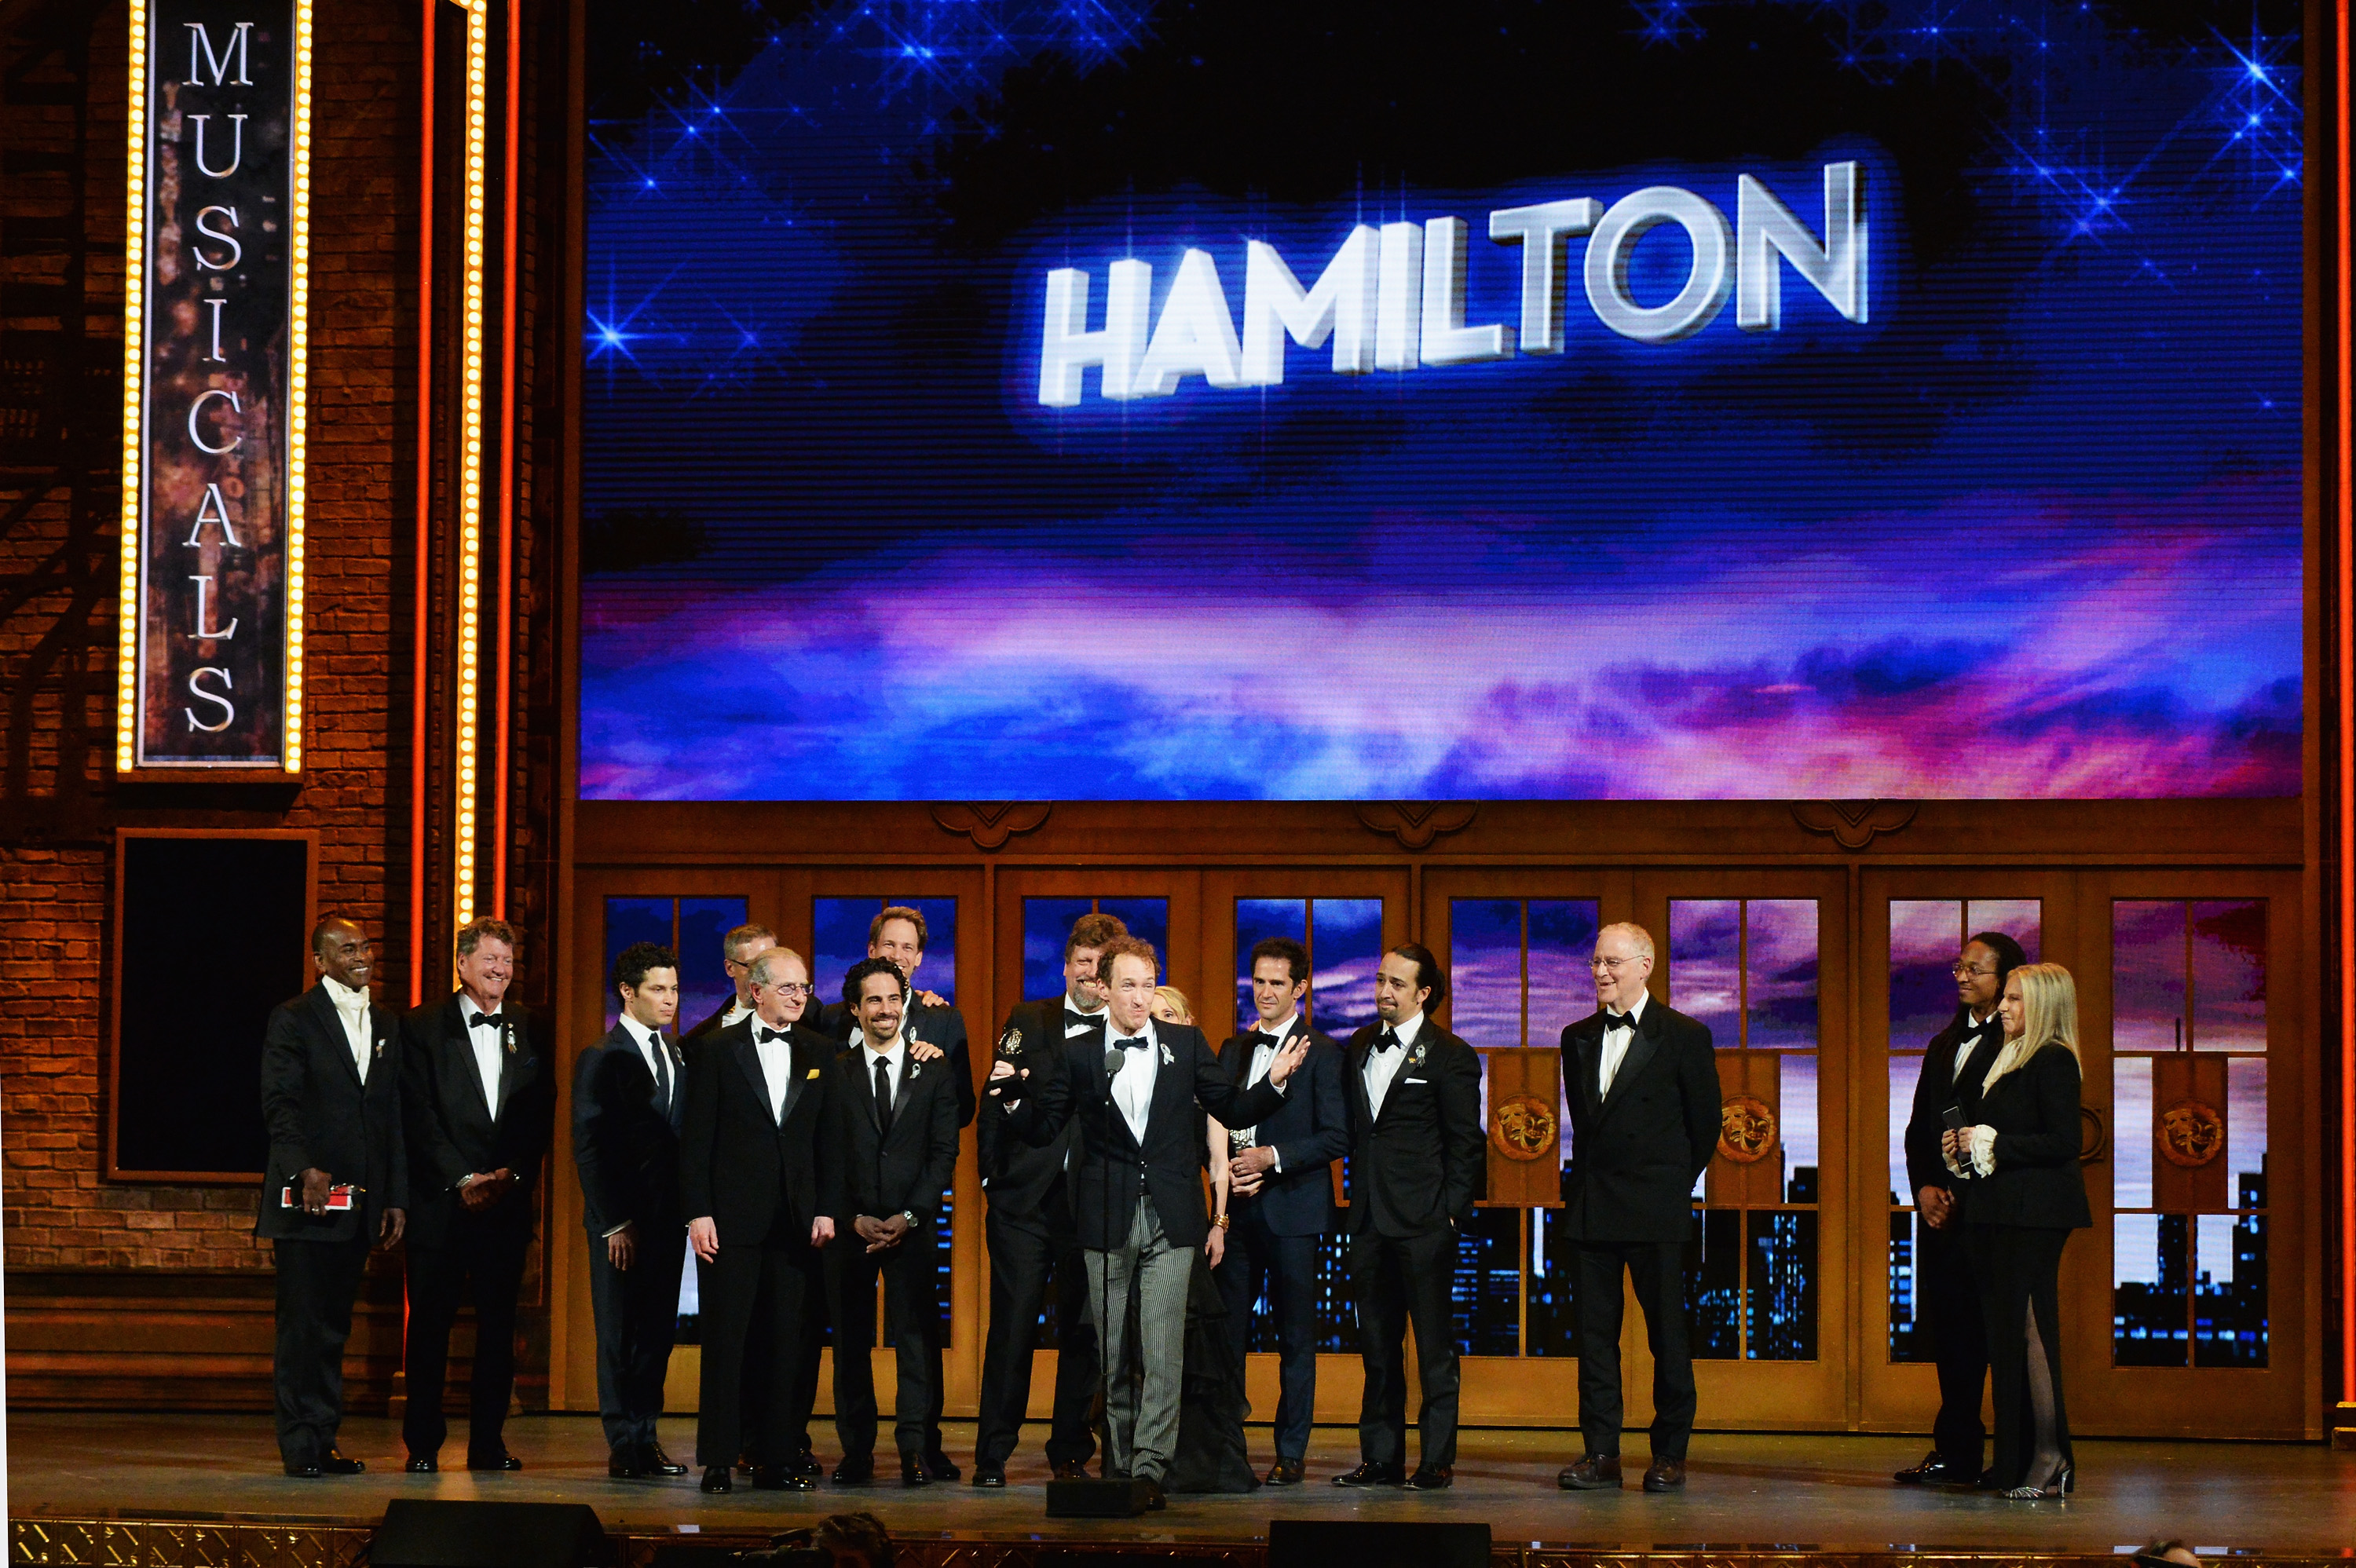 Producer Jeffrey Seller (C) accepts the Tony award for Best Musical for  Hamilton  onstage with his cast and creative team during the 70th Annual Tony Awards at The Beacon Theatre on June 12, 2016 in New York City.